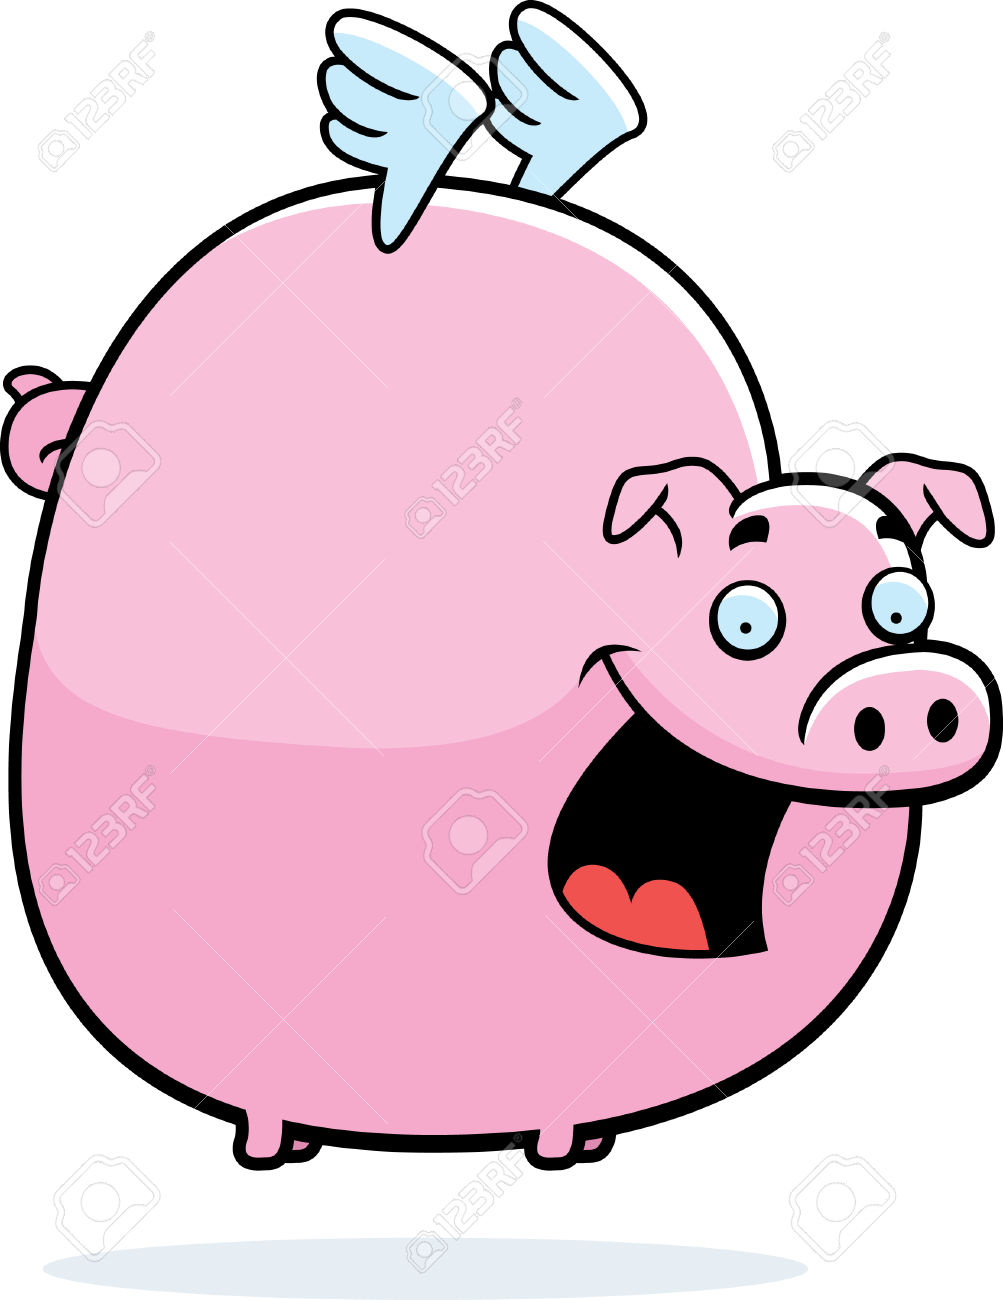 1003x1300 Pig With Wings Clipart